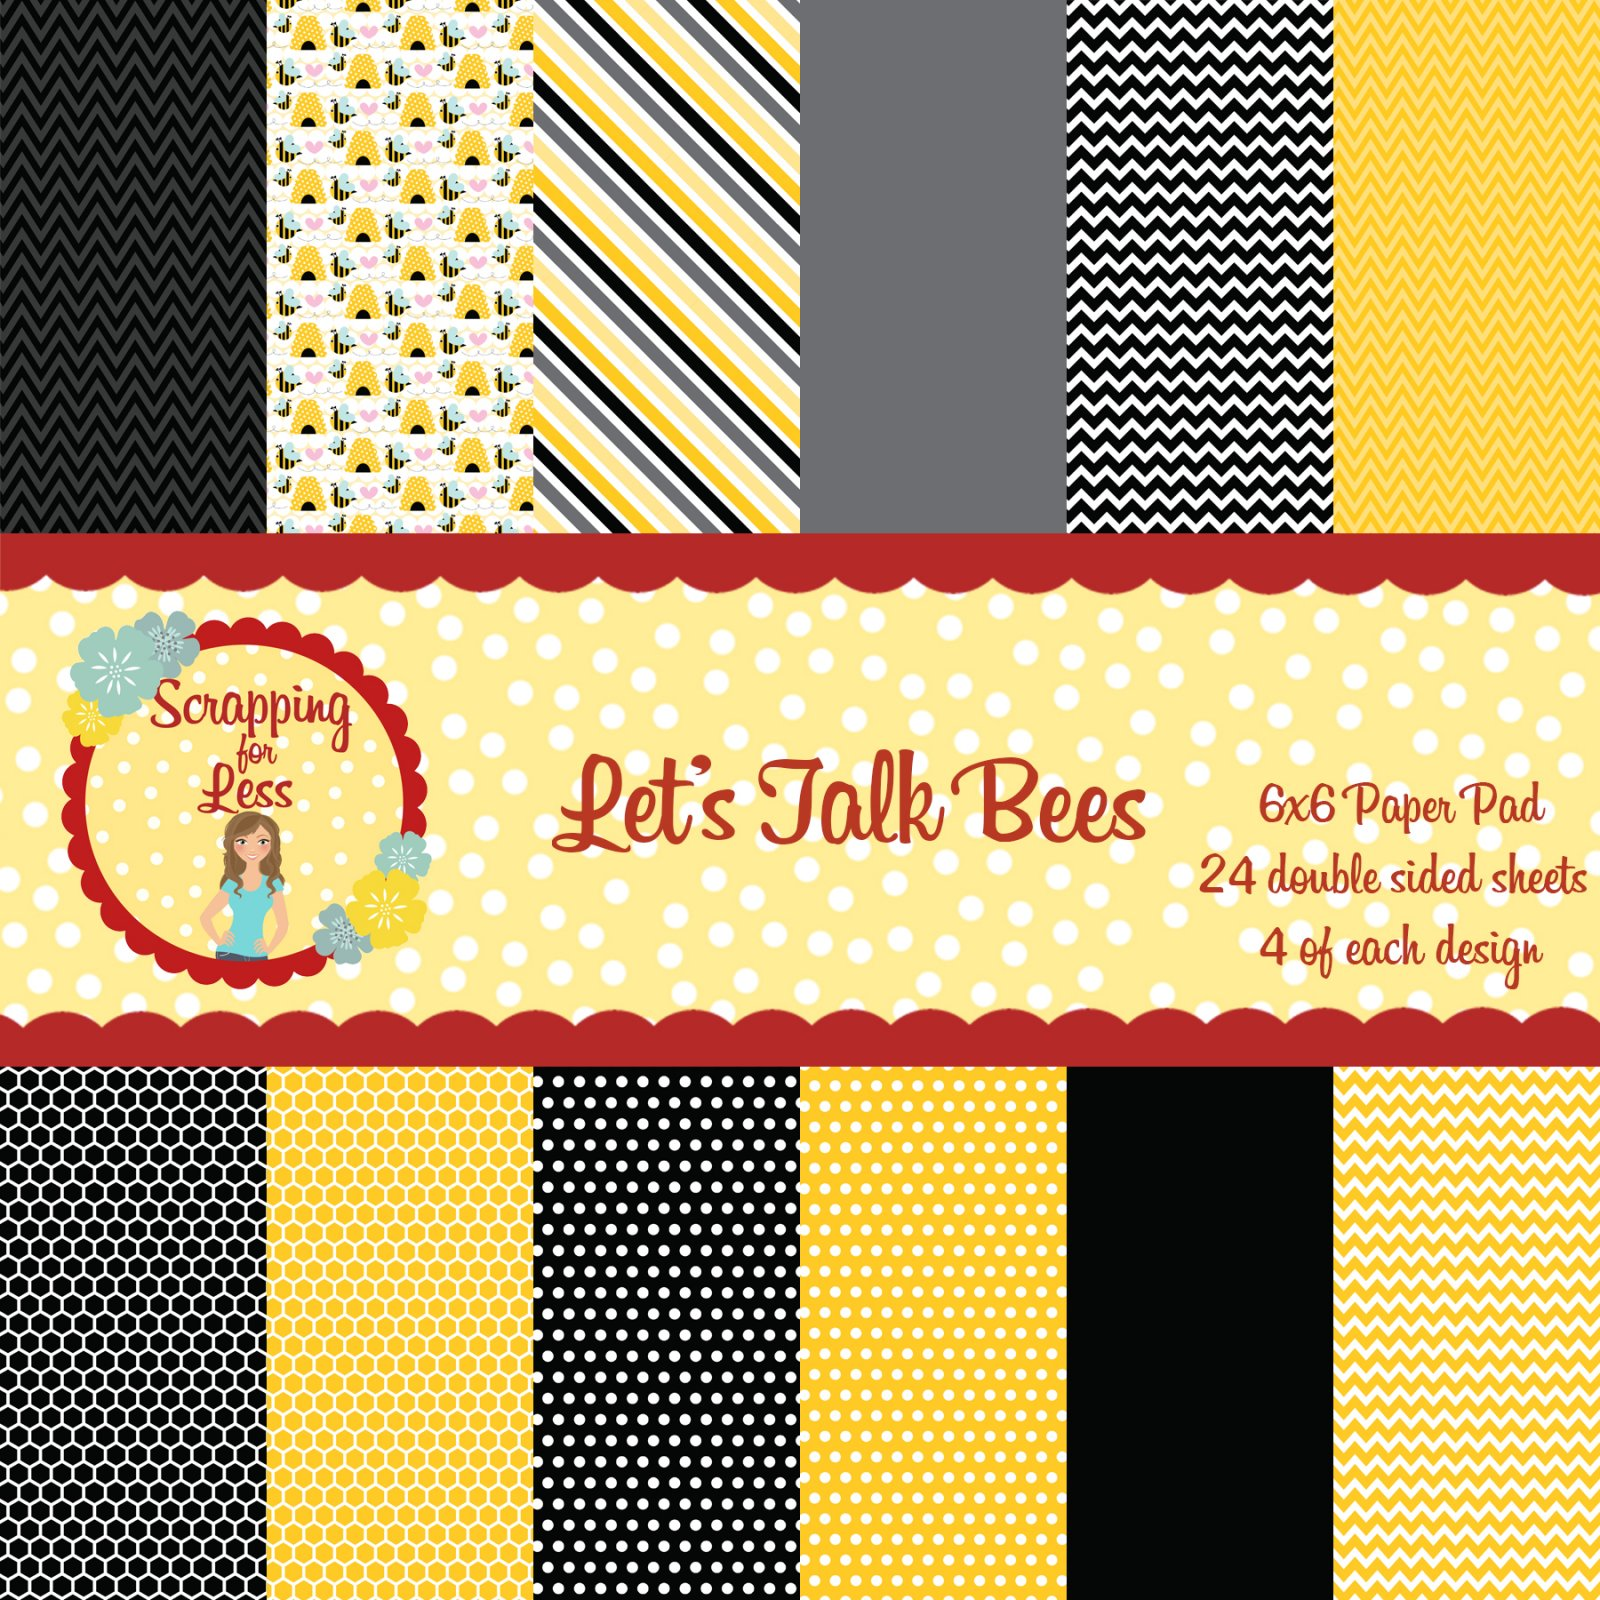 Scrapping for Less Let's Talk Bees 6x6 Paper Pad